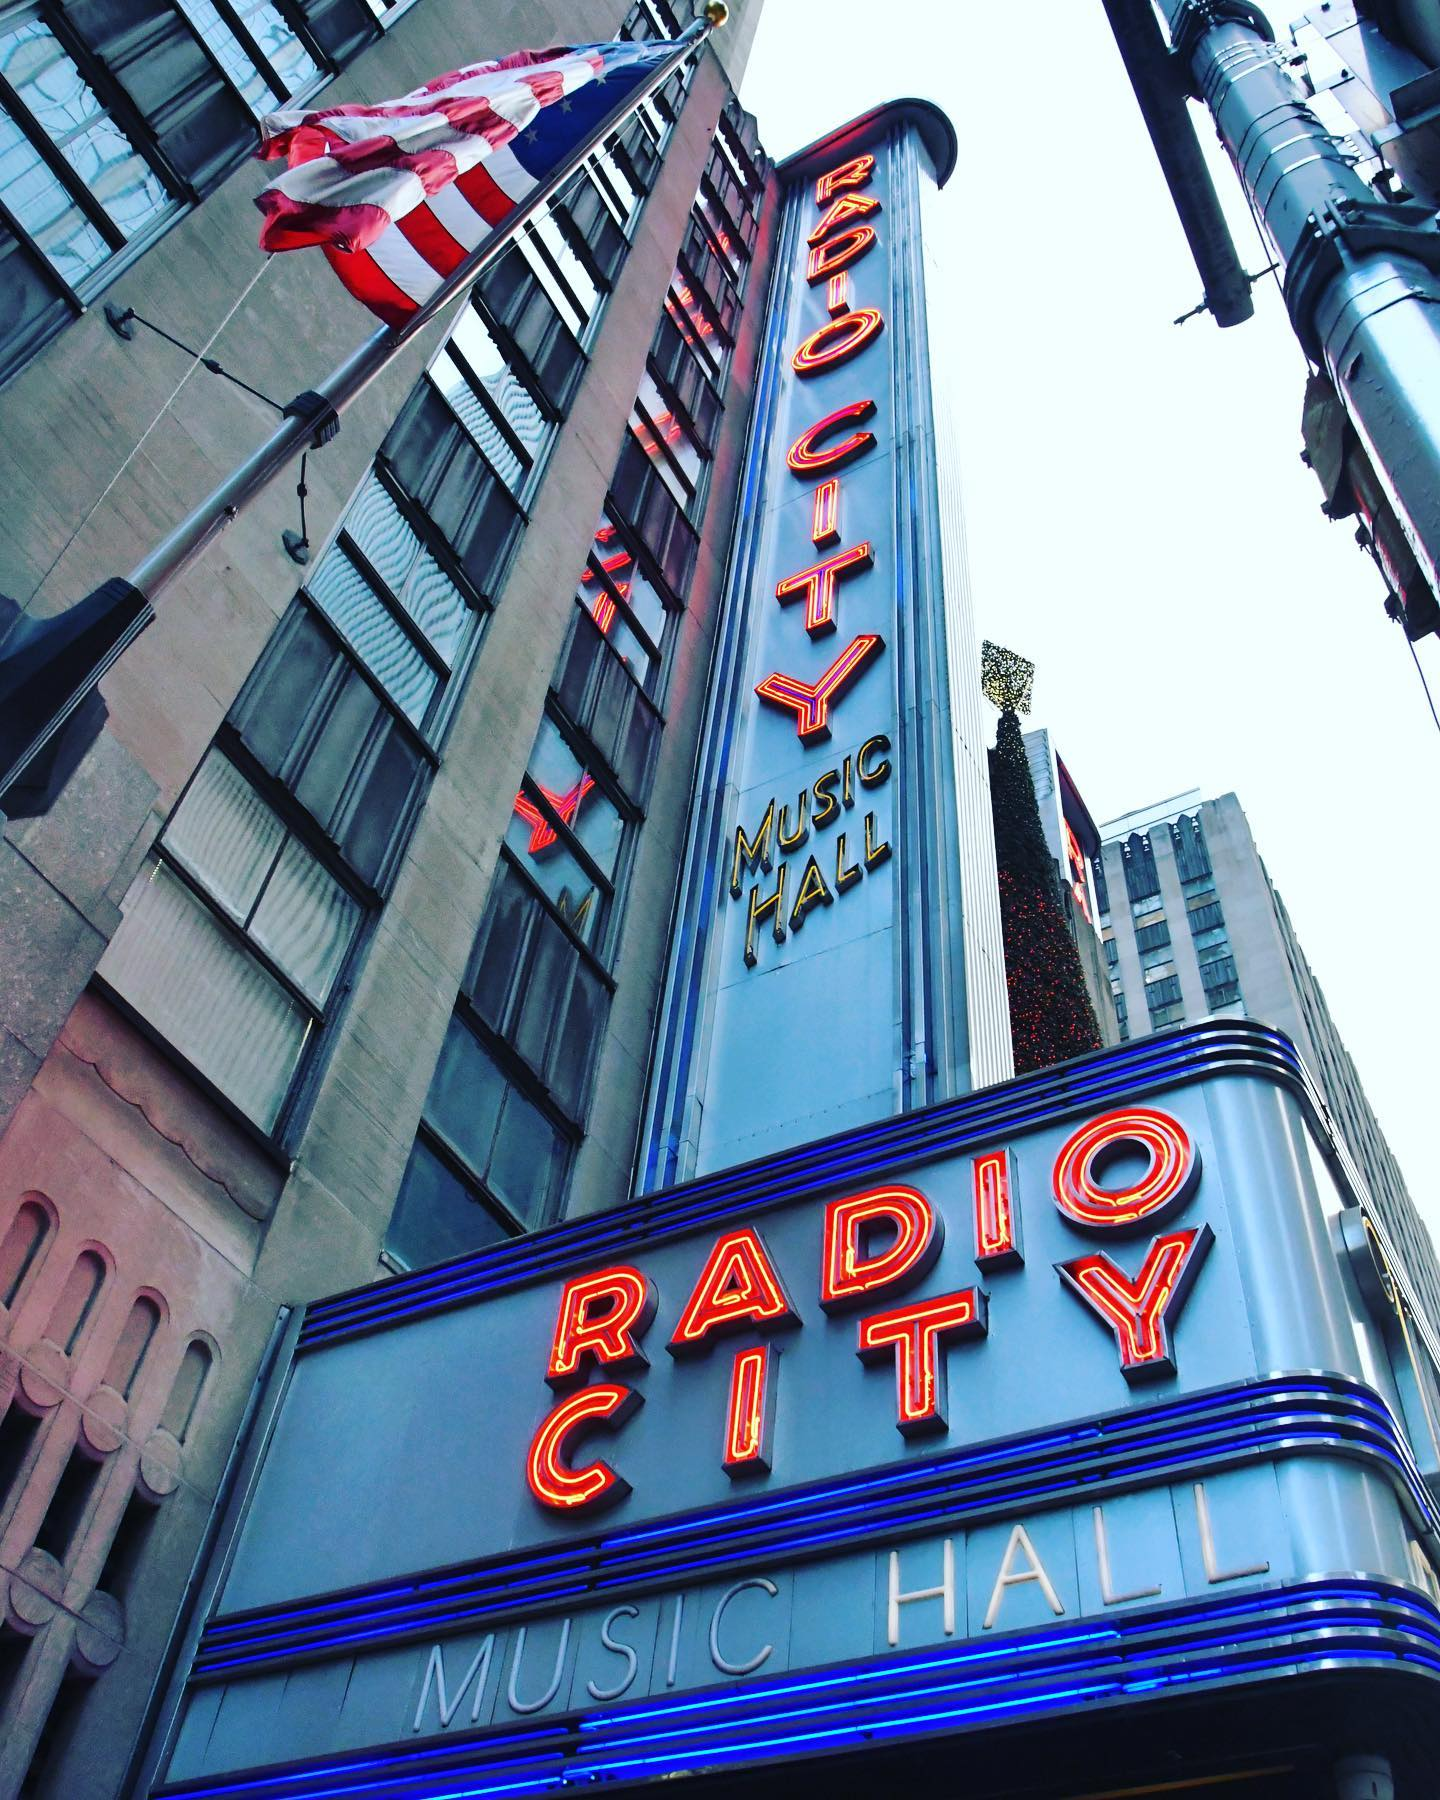 Radio City Music Hall, NYC, New York Radio City Music Hall is an event venue in Midtown and home of the dance company The Rockettes. The Art Deco style building is within Rockefeller Center. Radio City Music Hall, which opened to the public 1932, is well-known for hosting concerts and television events such like the Grammy Awards. Last but not least for the Radio City Christmas Spectacular, which runs (normally) every year from beginning of November until January. The Show has become a New York Christmas tradition. #usatravel #usatravels #usareisen #usatrip #citytrip #citytravel #newyork #newyorkcity #nyc #nycphotographer #nycphotography #travelphotography #reisefotografie #bigcitylove #christmasnyc #radiocitymusichall #midtownnyc #midtownmanhattan  #traveltheworld #travelpics #travelpic #travelnewyork #newyork_ig #nyc_explorers #nyc_instagram #travelblog #travelblogger #instatravel #instatrip #instatraveling